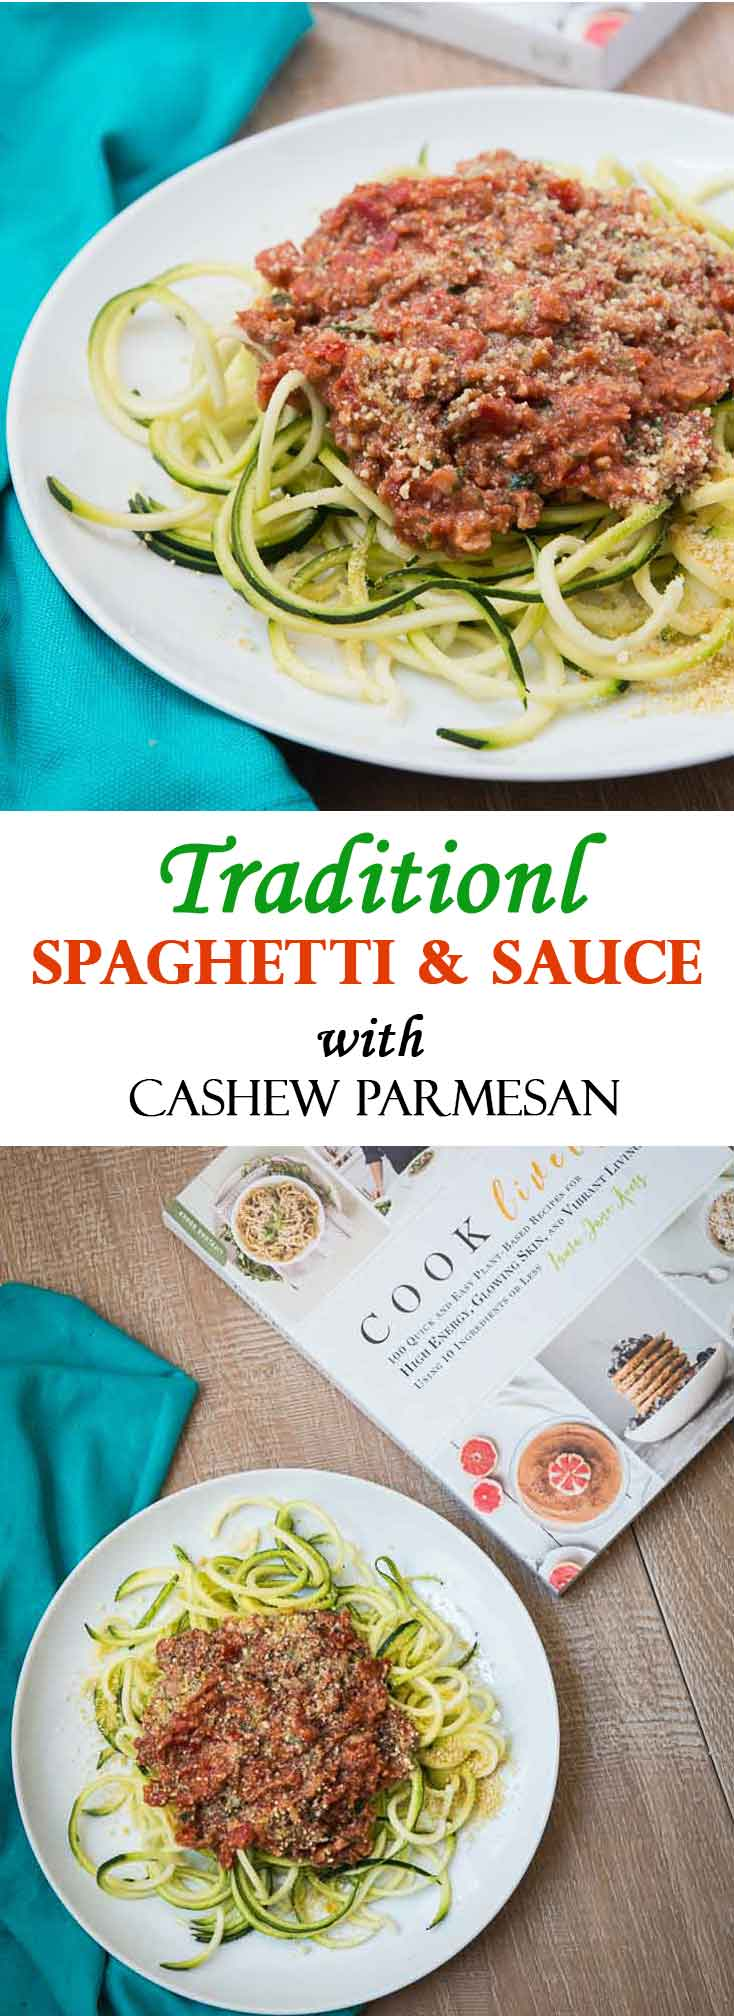 Easy Traditional Spaghetti & Sauce Recipe with Cashew Parmesan from Cook Lively cookbook! #vegan #glutenfree | Vegetarian Gastronomy | www.VegetarianGastronomy.com